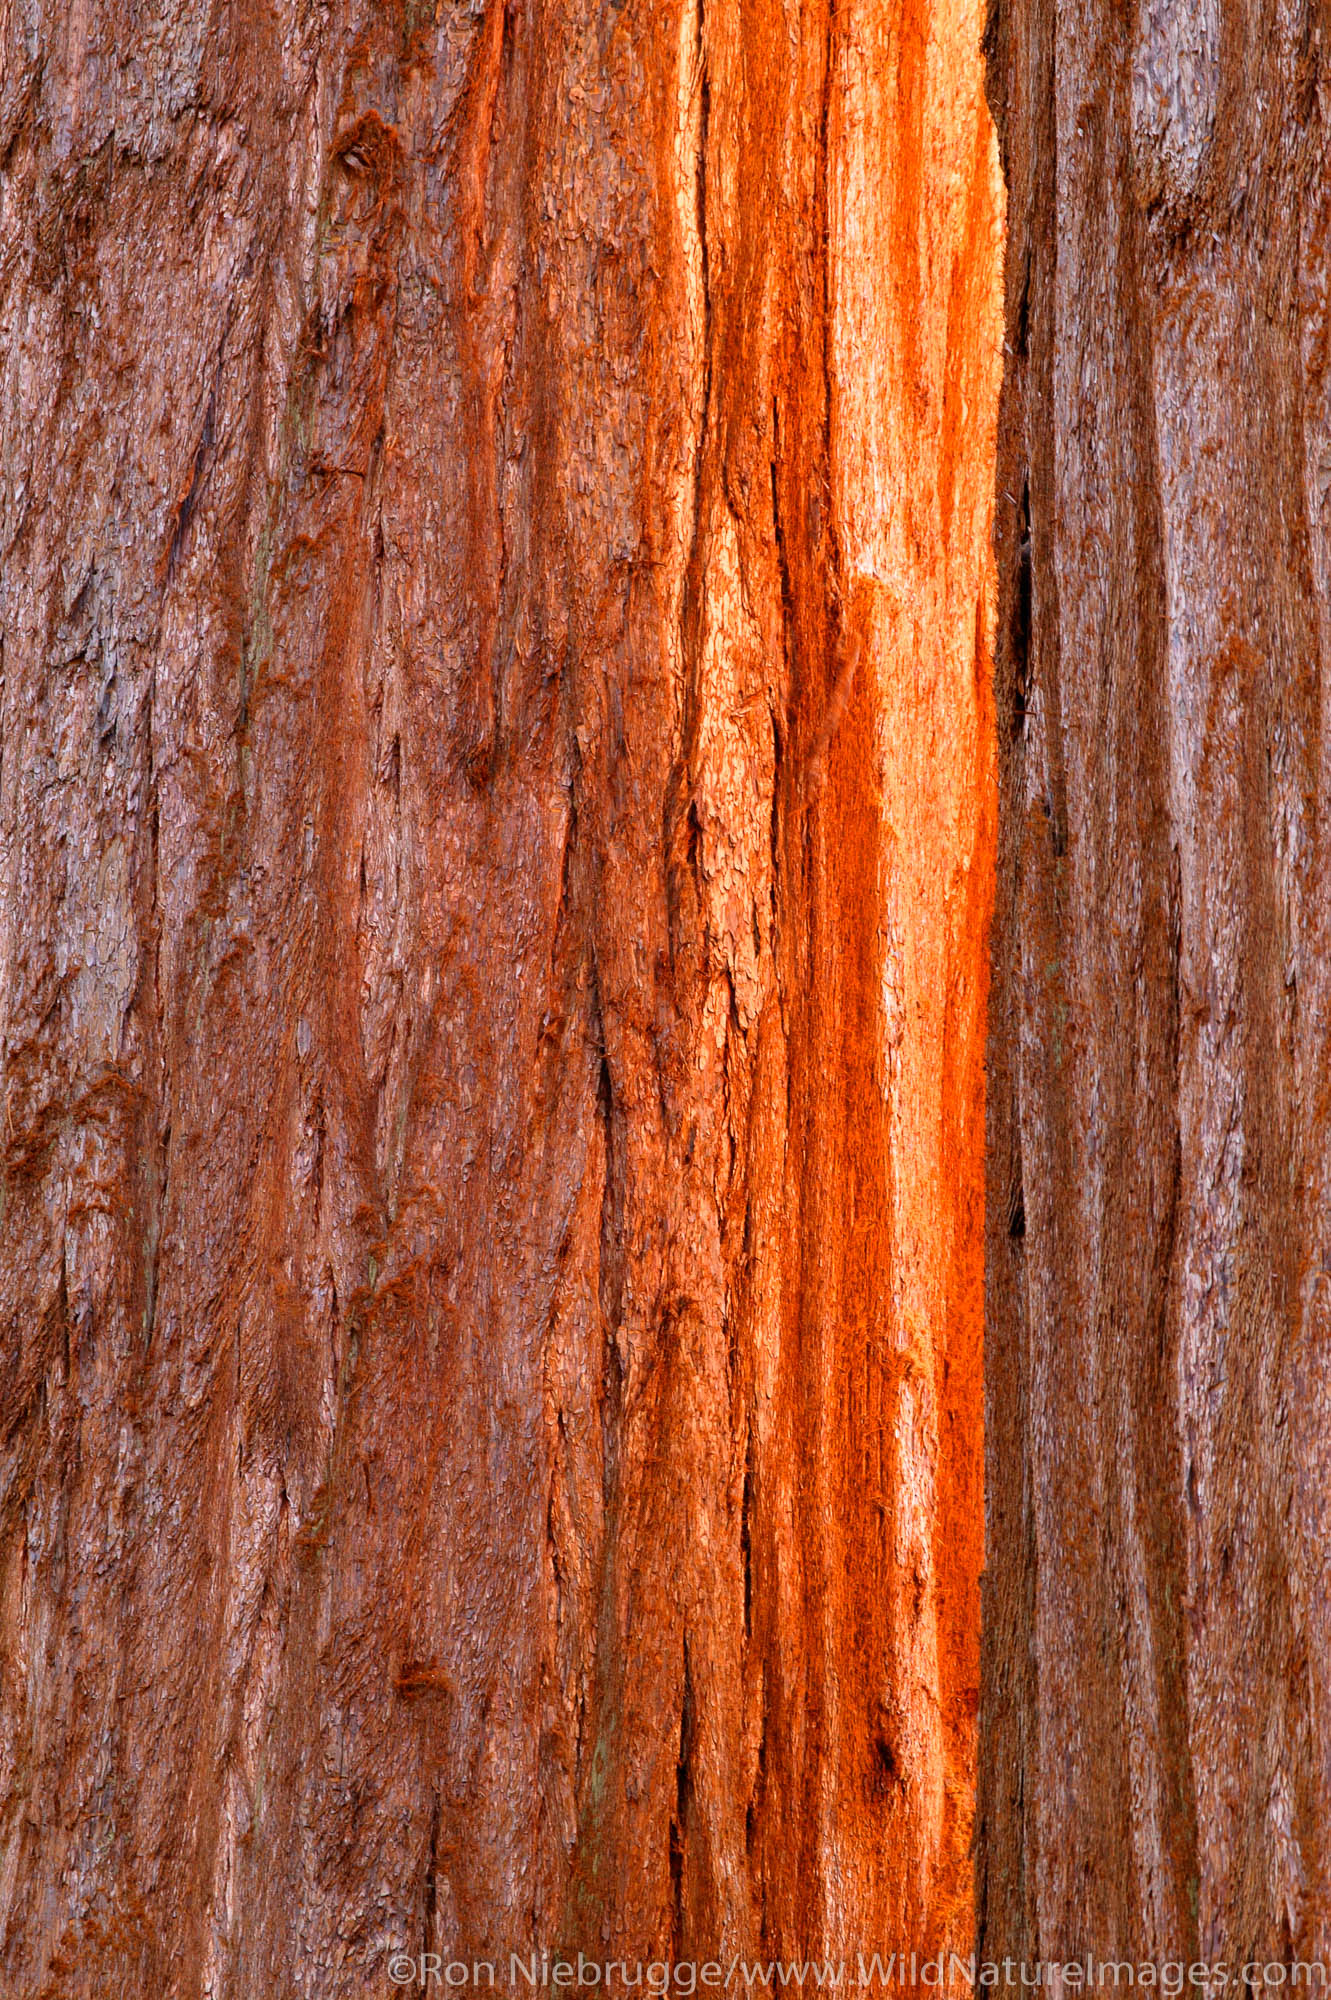 Sun shines on the trunk between two giant Sequoia trees in Sequoia National Park, California.